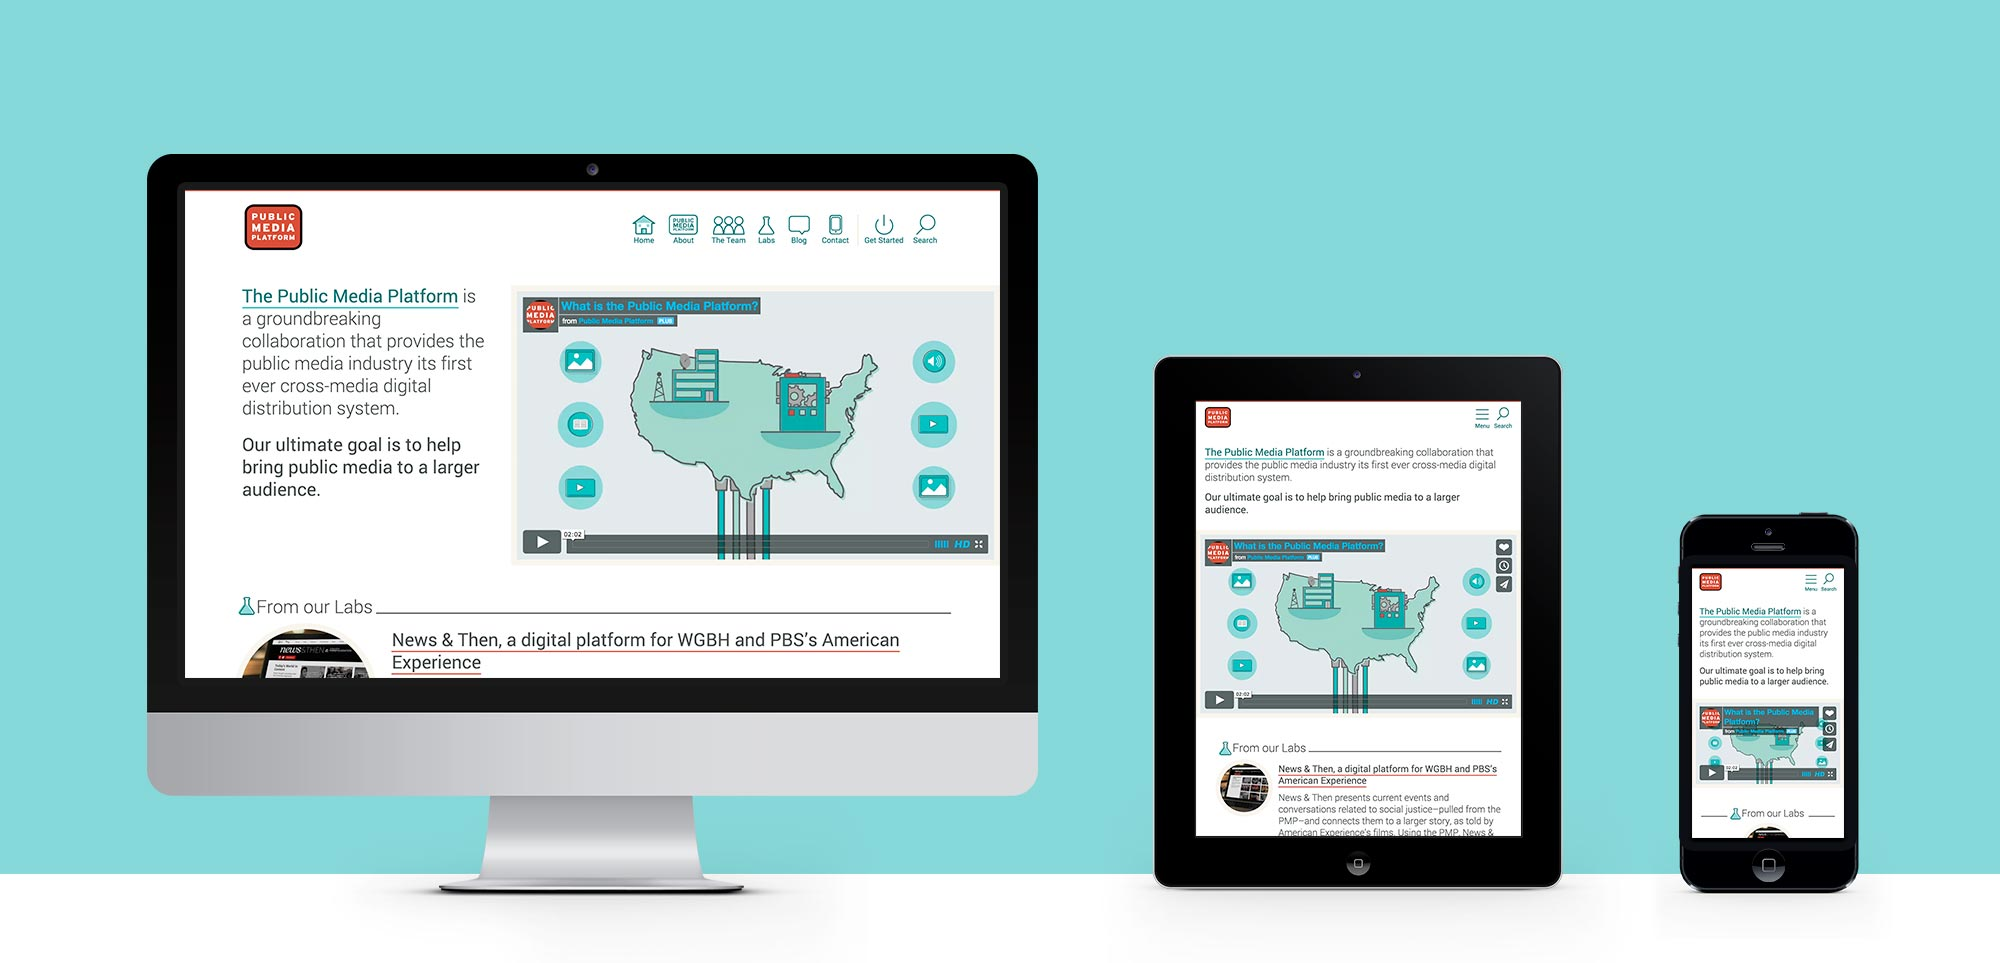 responsive web design examples for the Public Media Platform